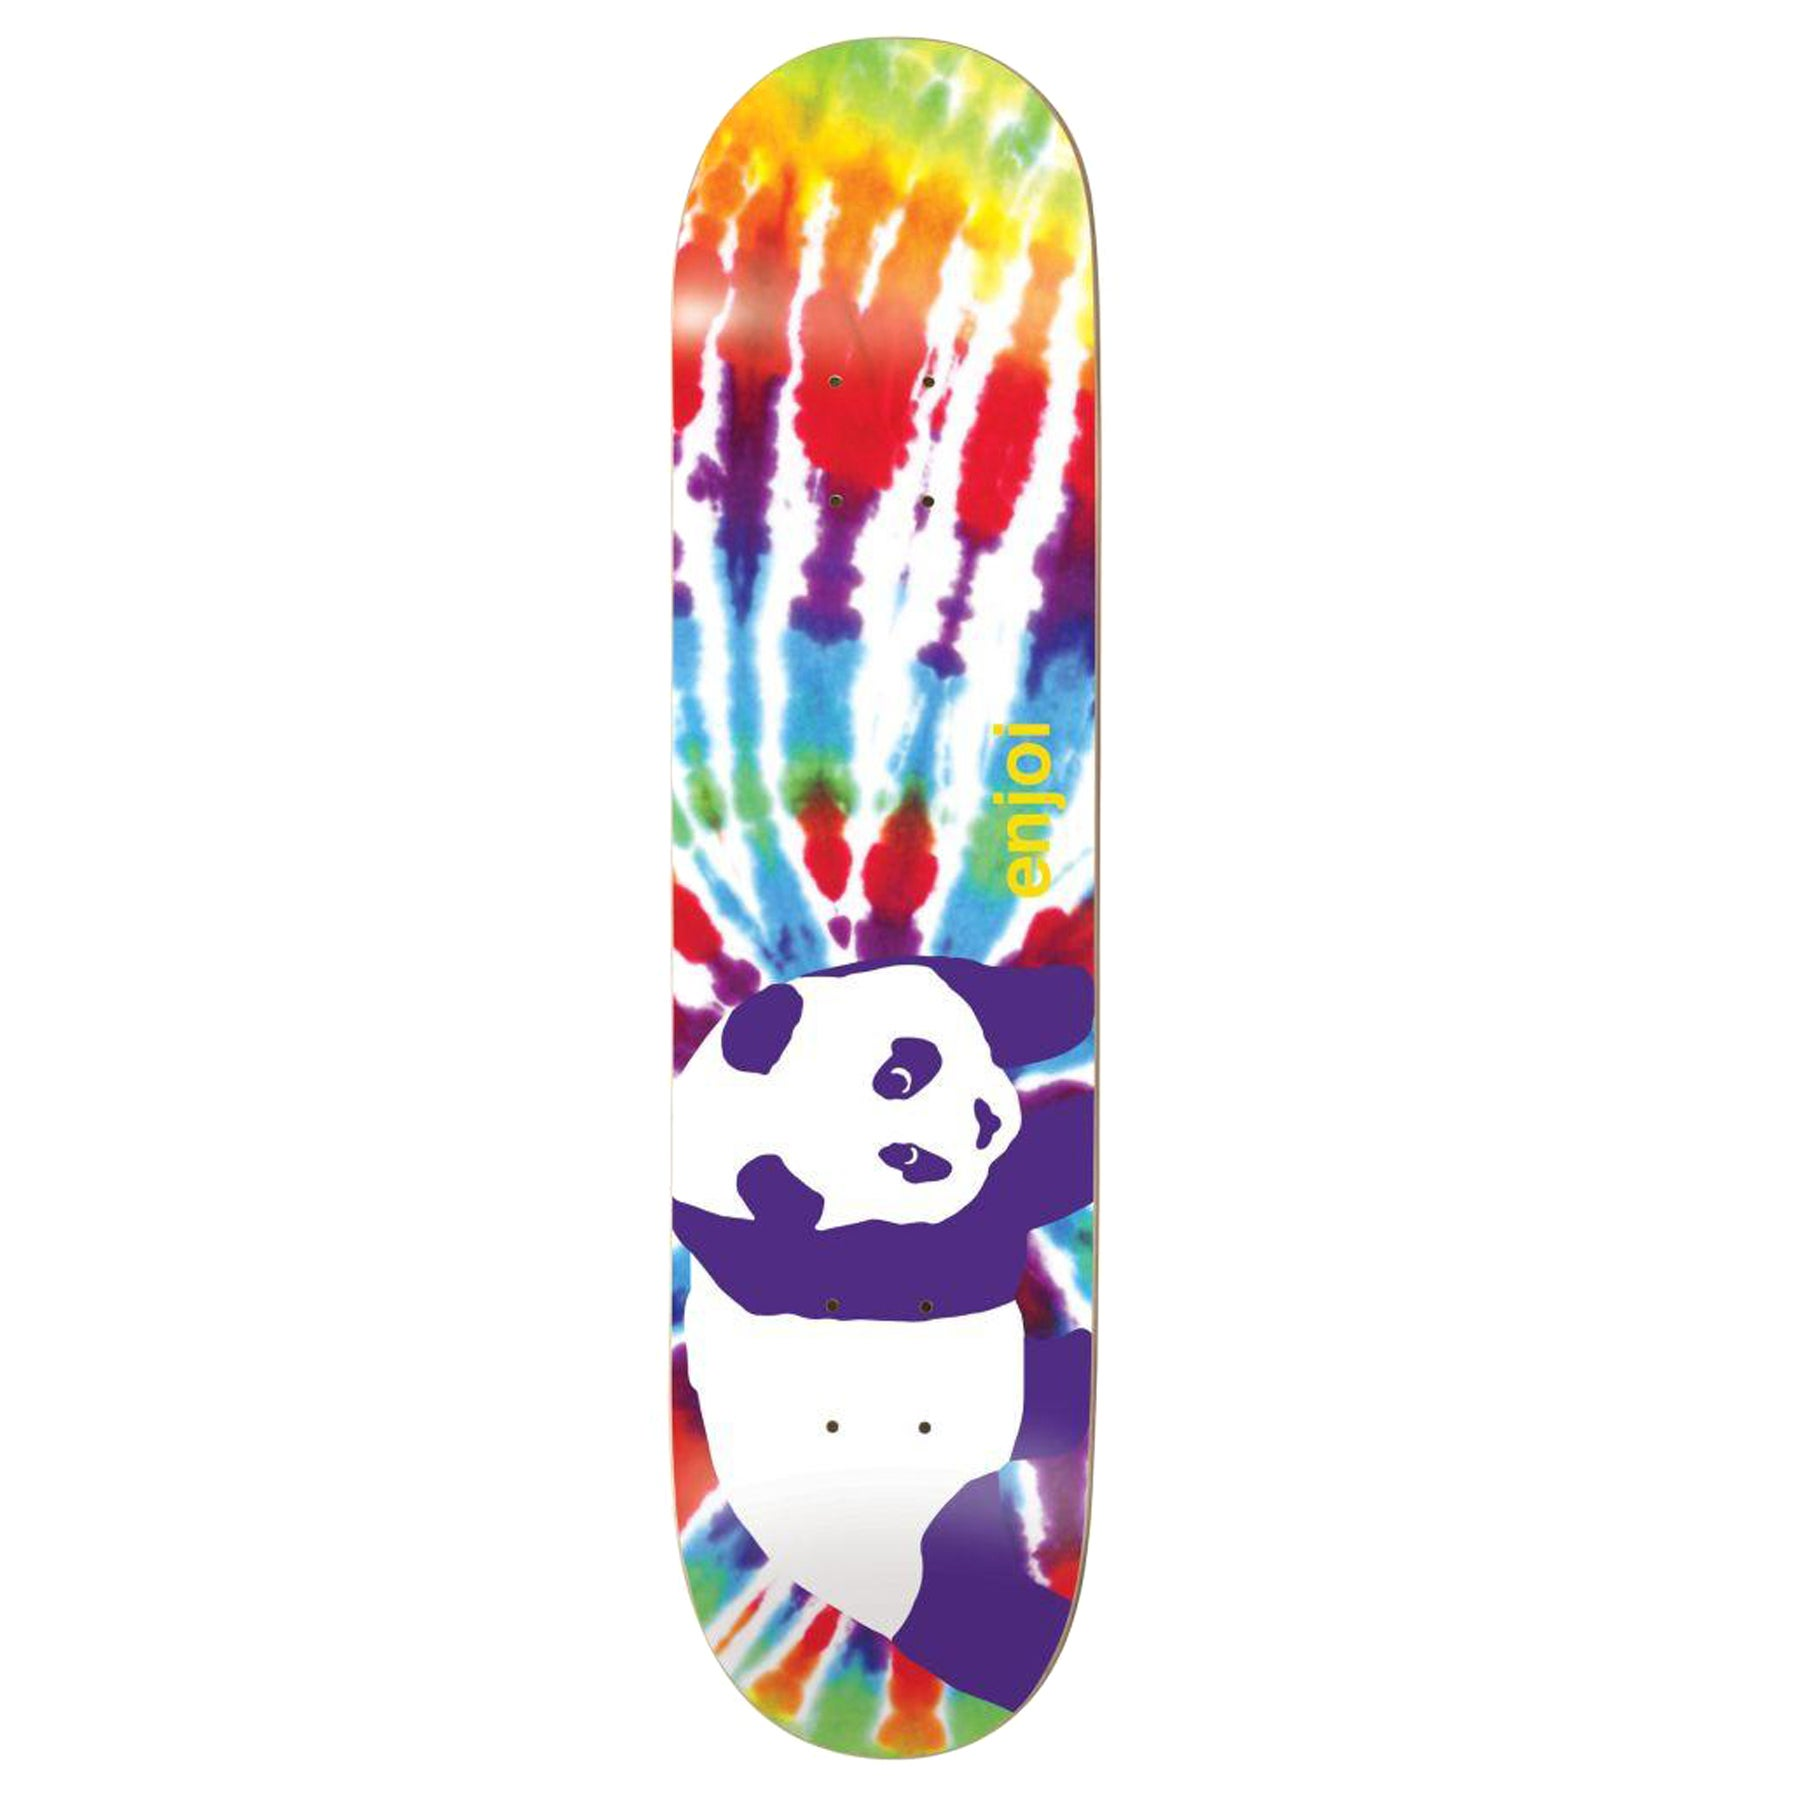 Enjoi Tie Dye V6 R7 Skateboard Deck - Multi